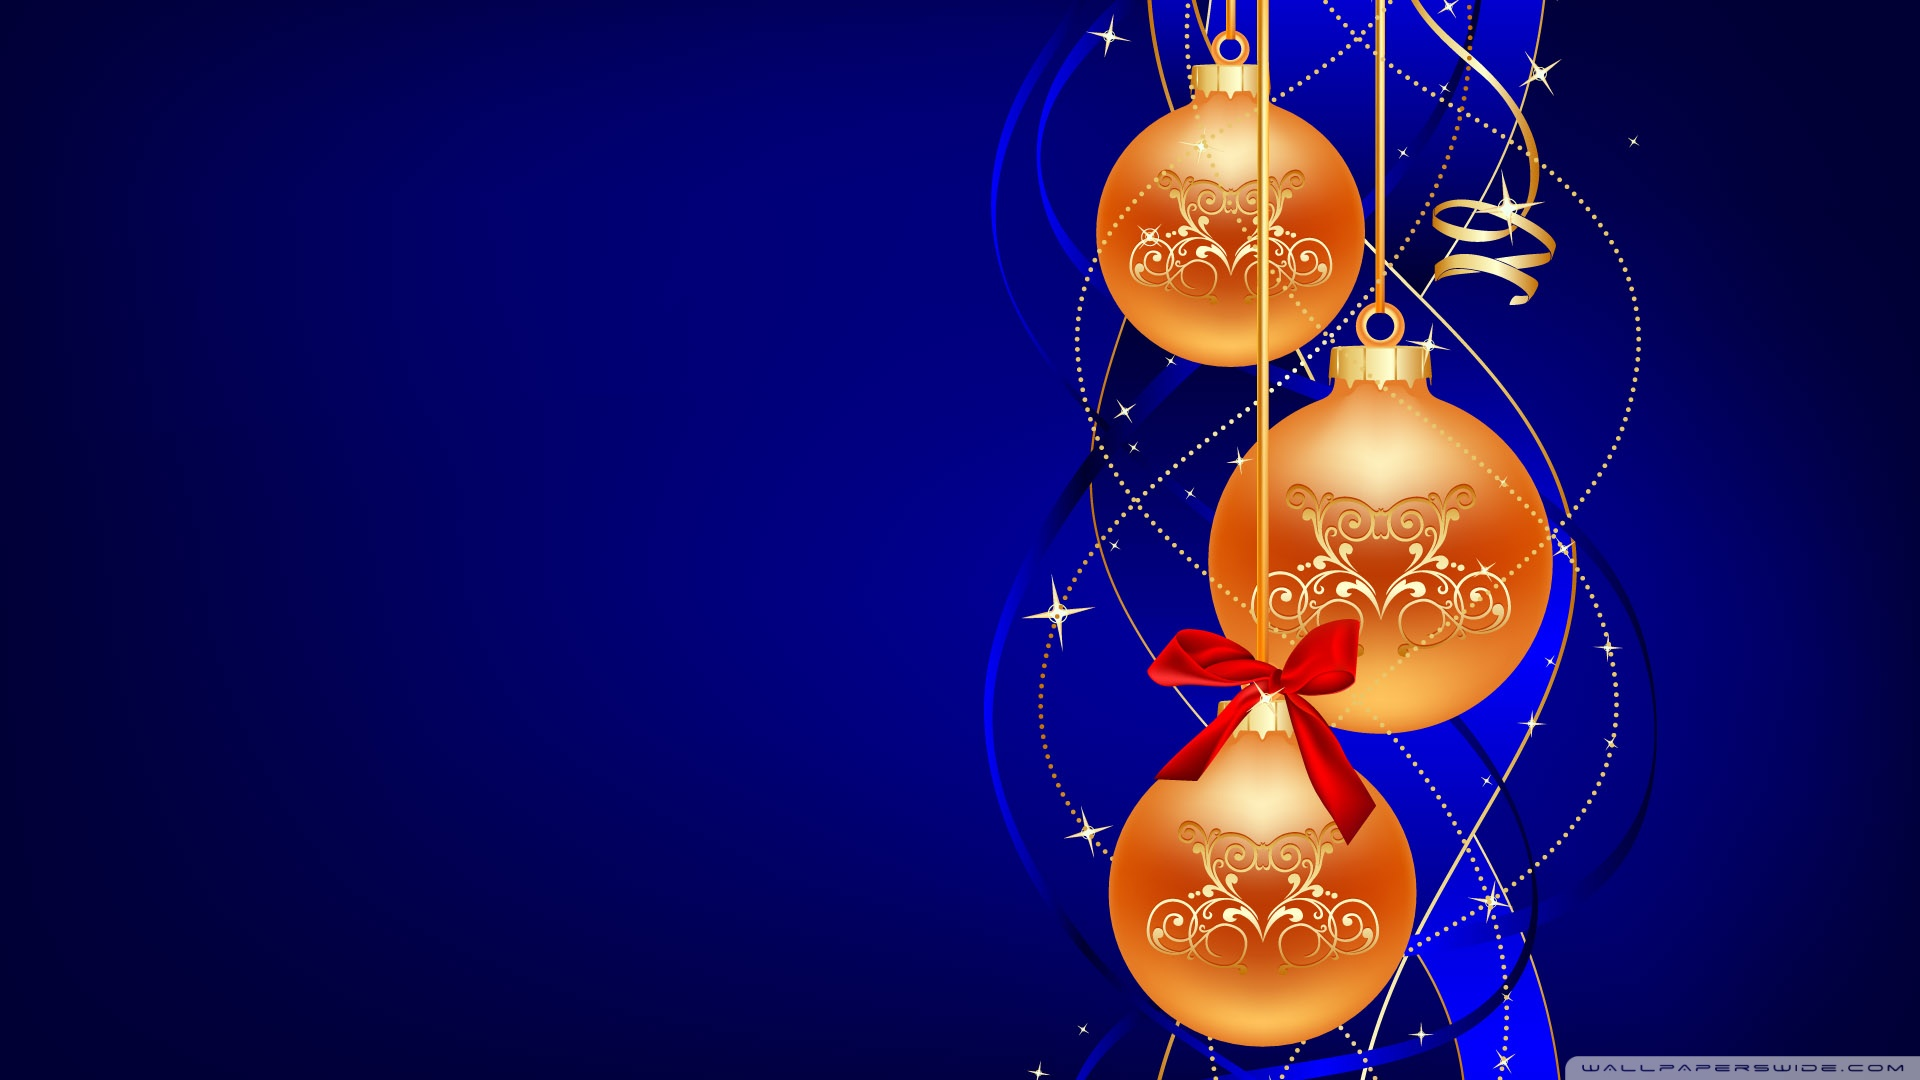 Christmas Background Hd.100 Best Hd Christmas Wallpapers For Your Desktop